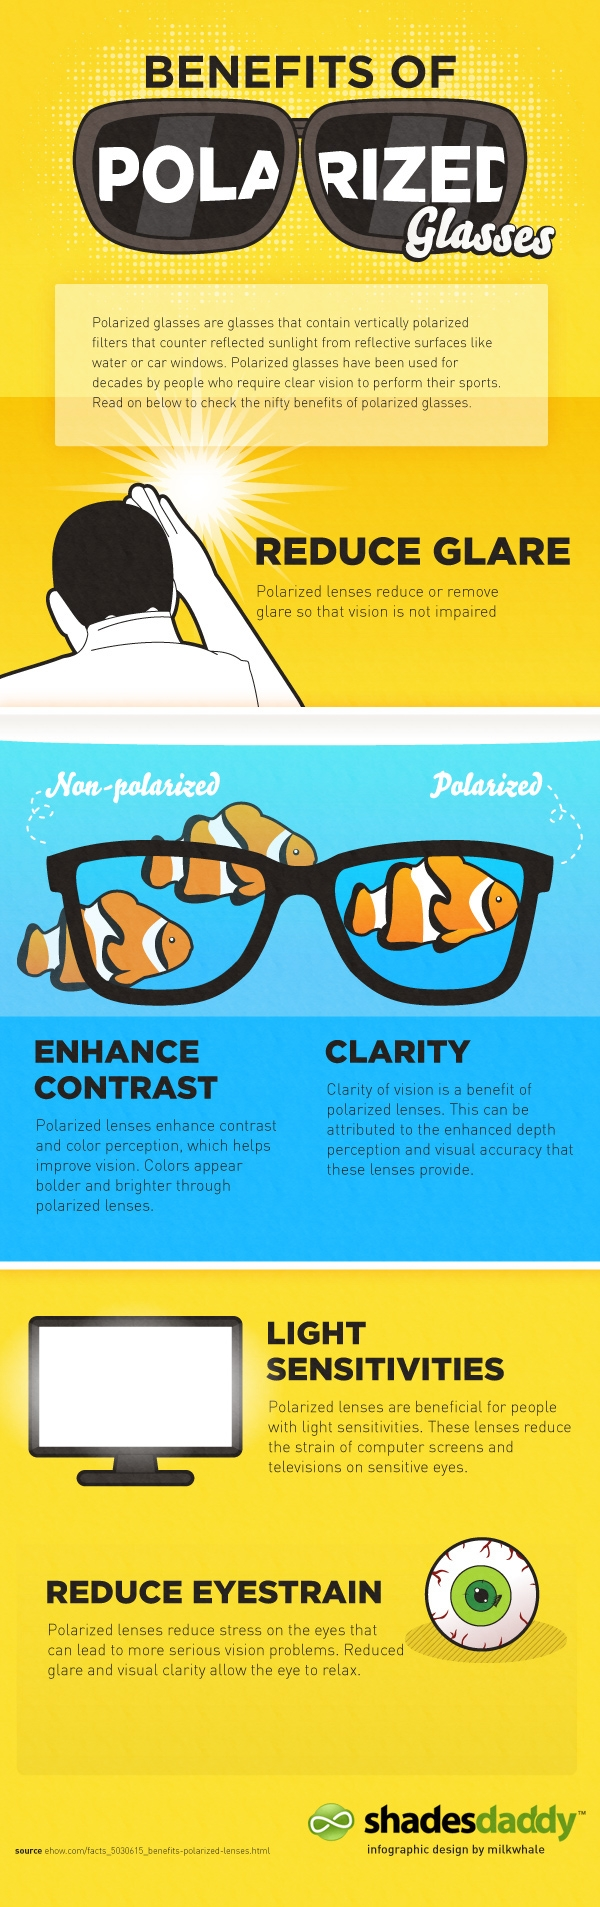 polarized sunglasses glass lenses  Polarized vs. Non-Polarized Lenses? Myths and Truths